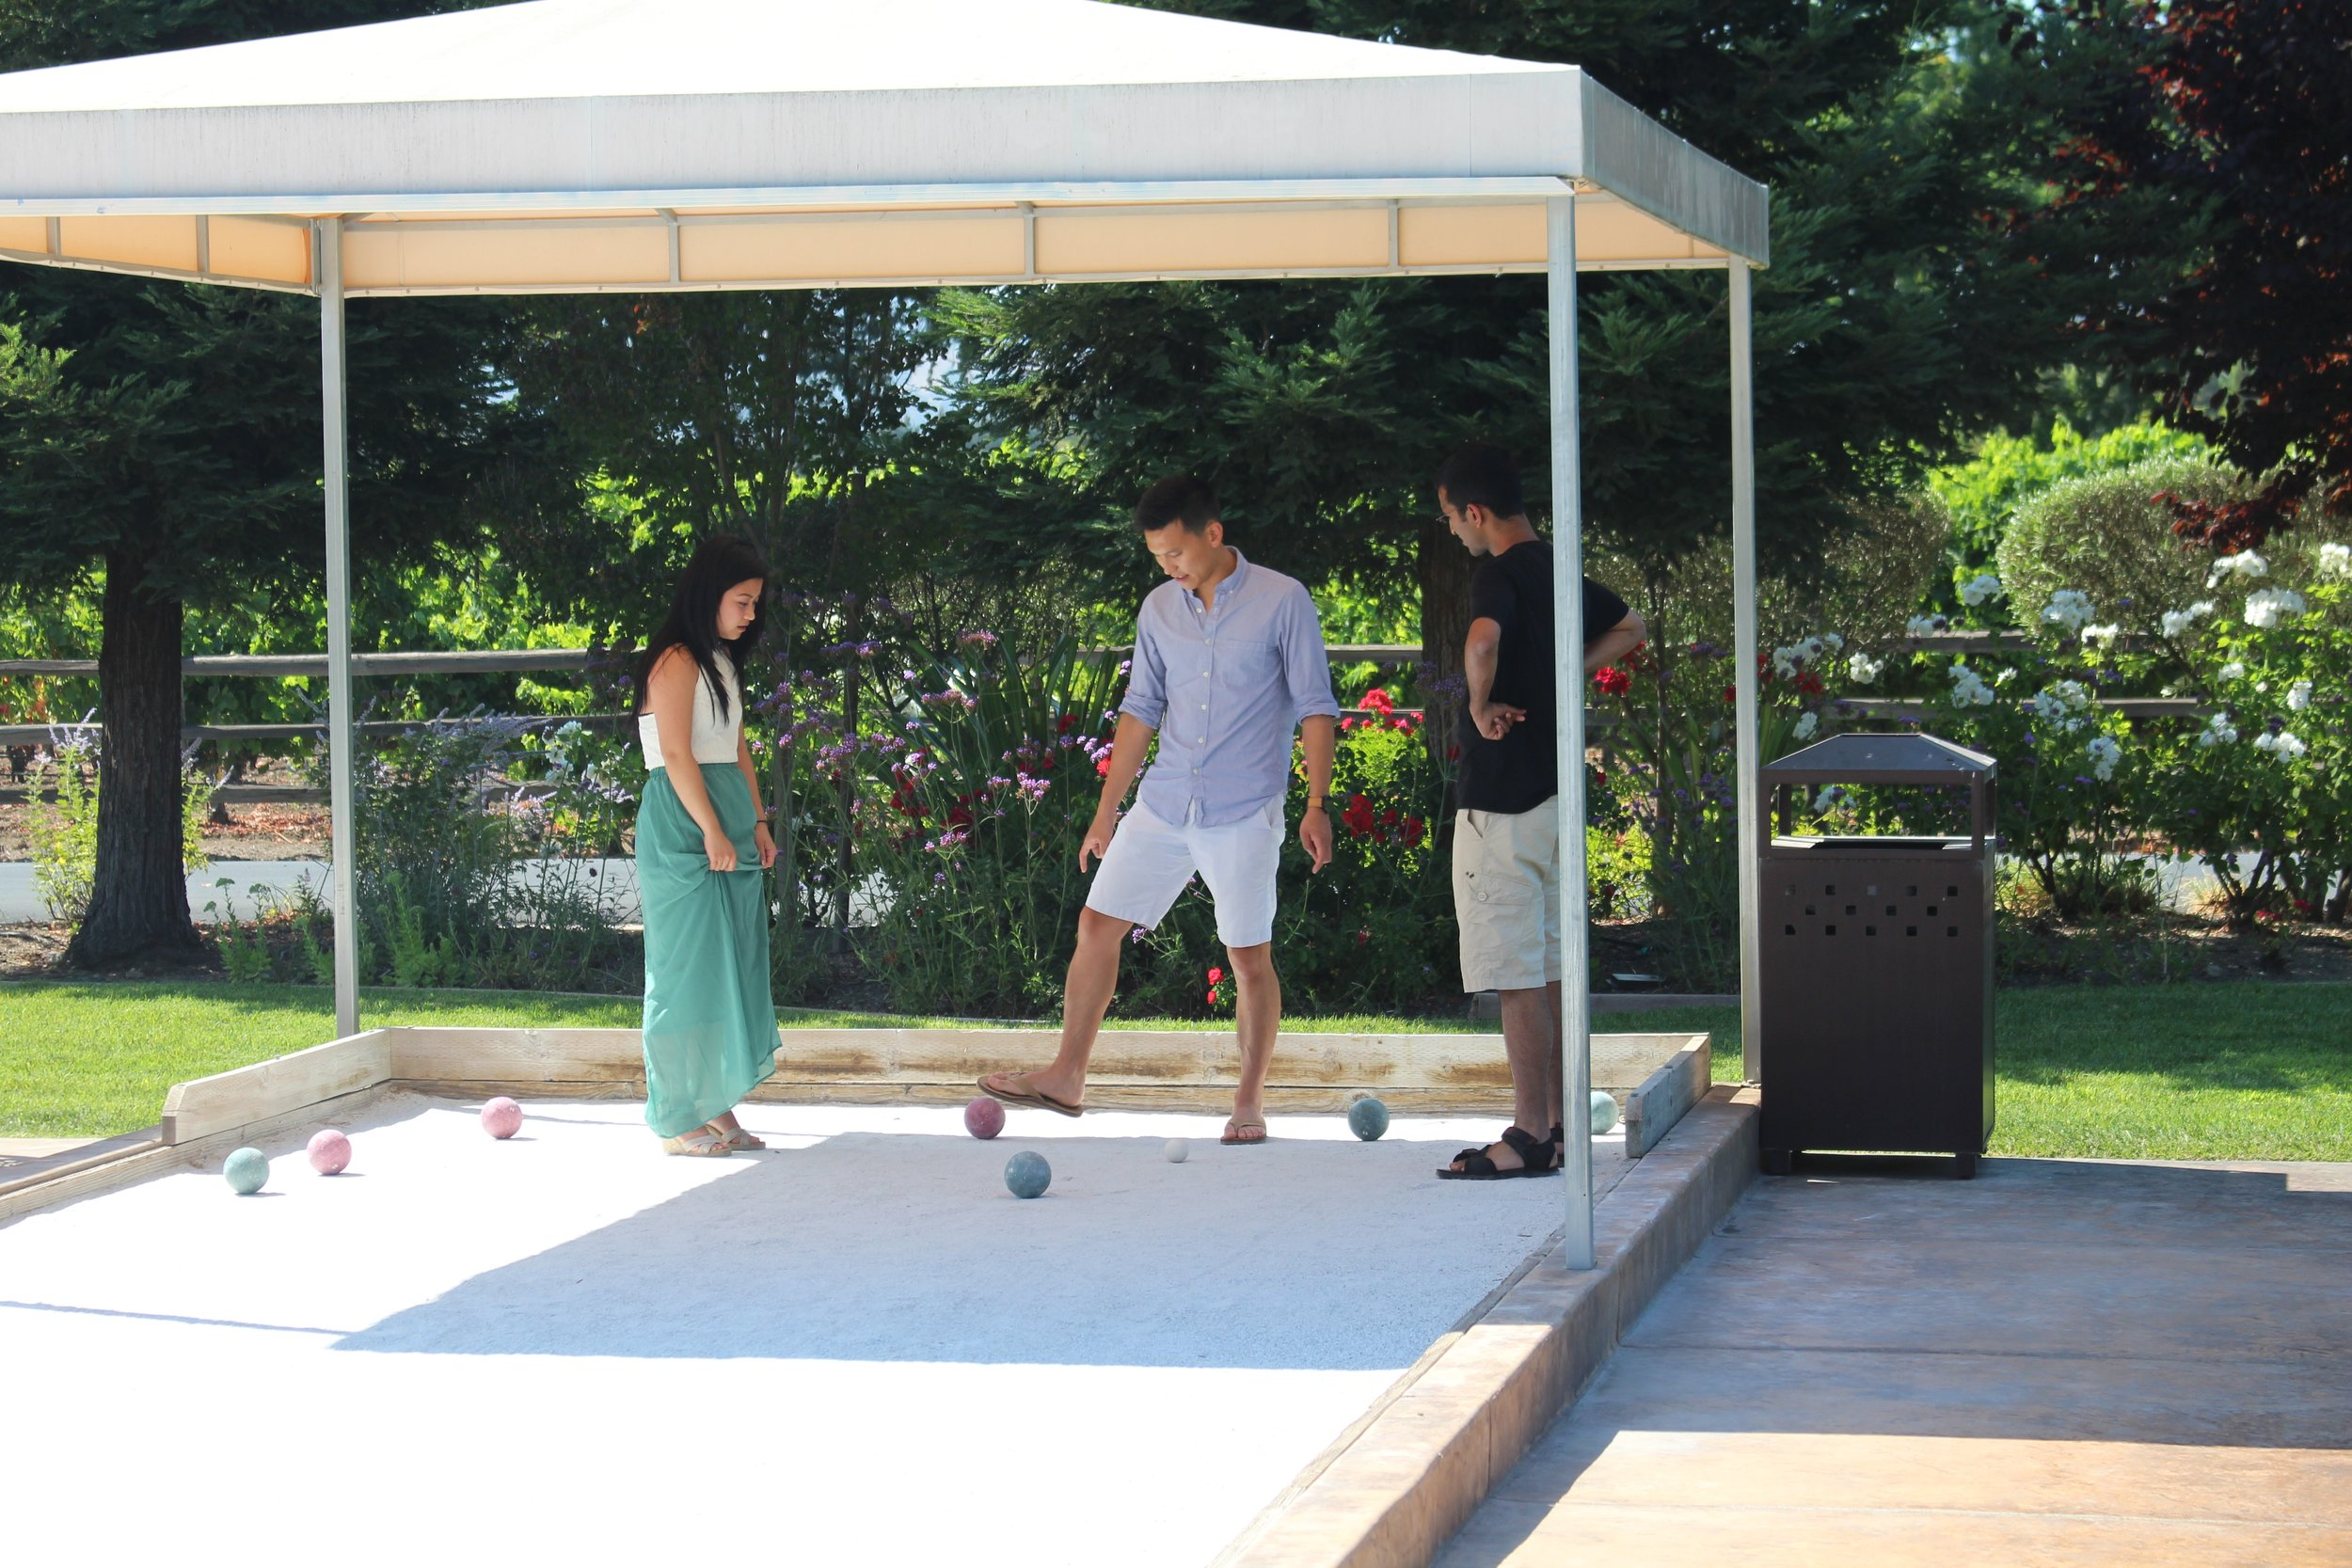 playing-bocce-ball-at-corporate-event